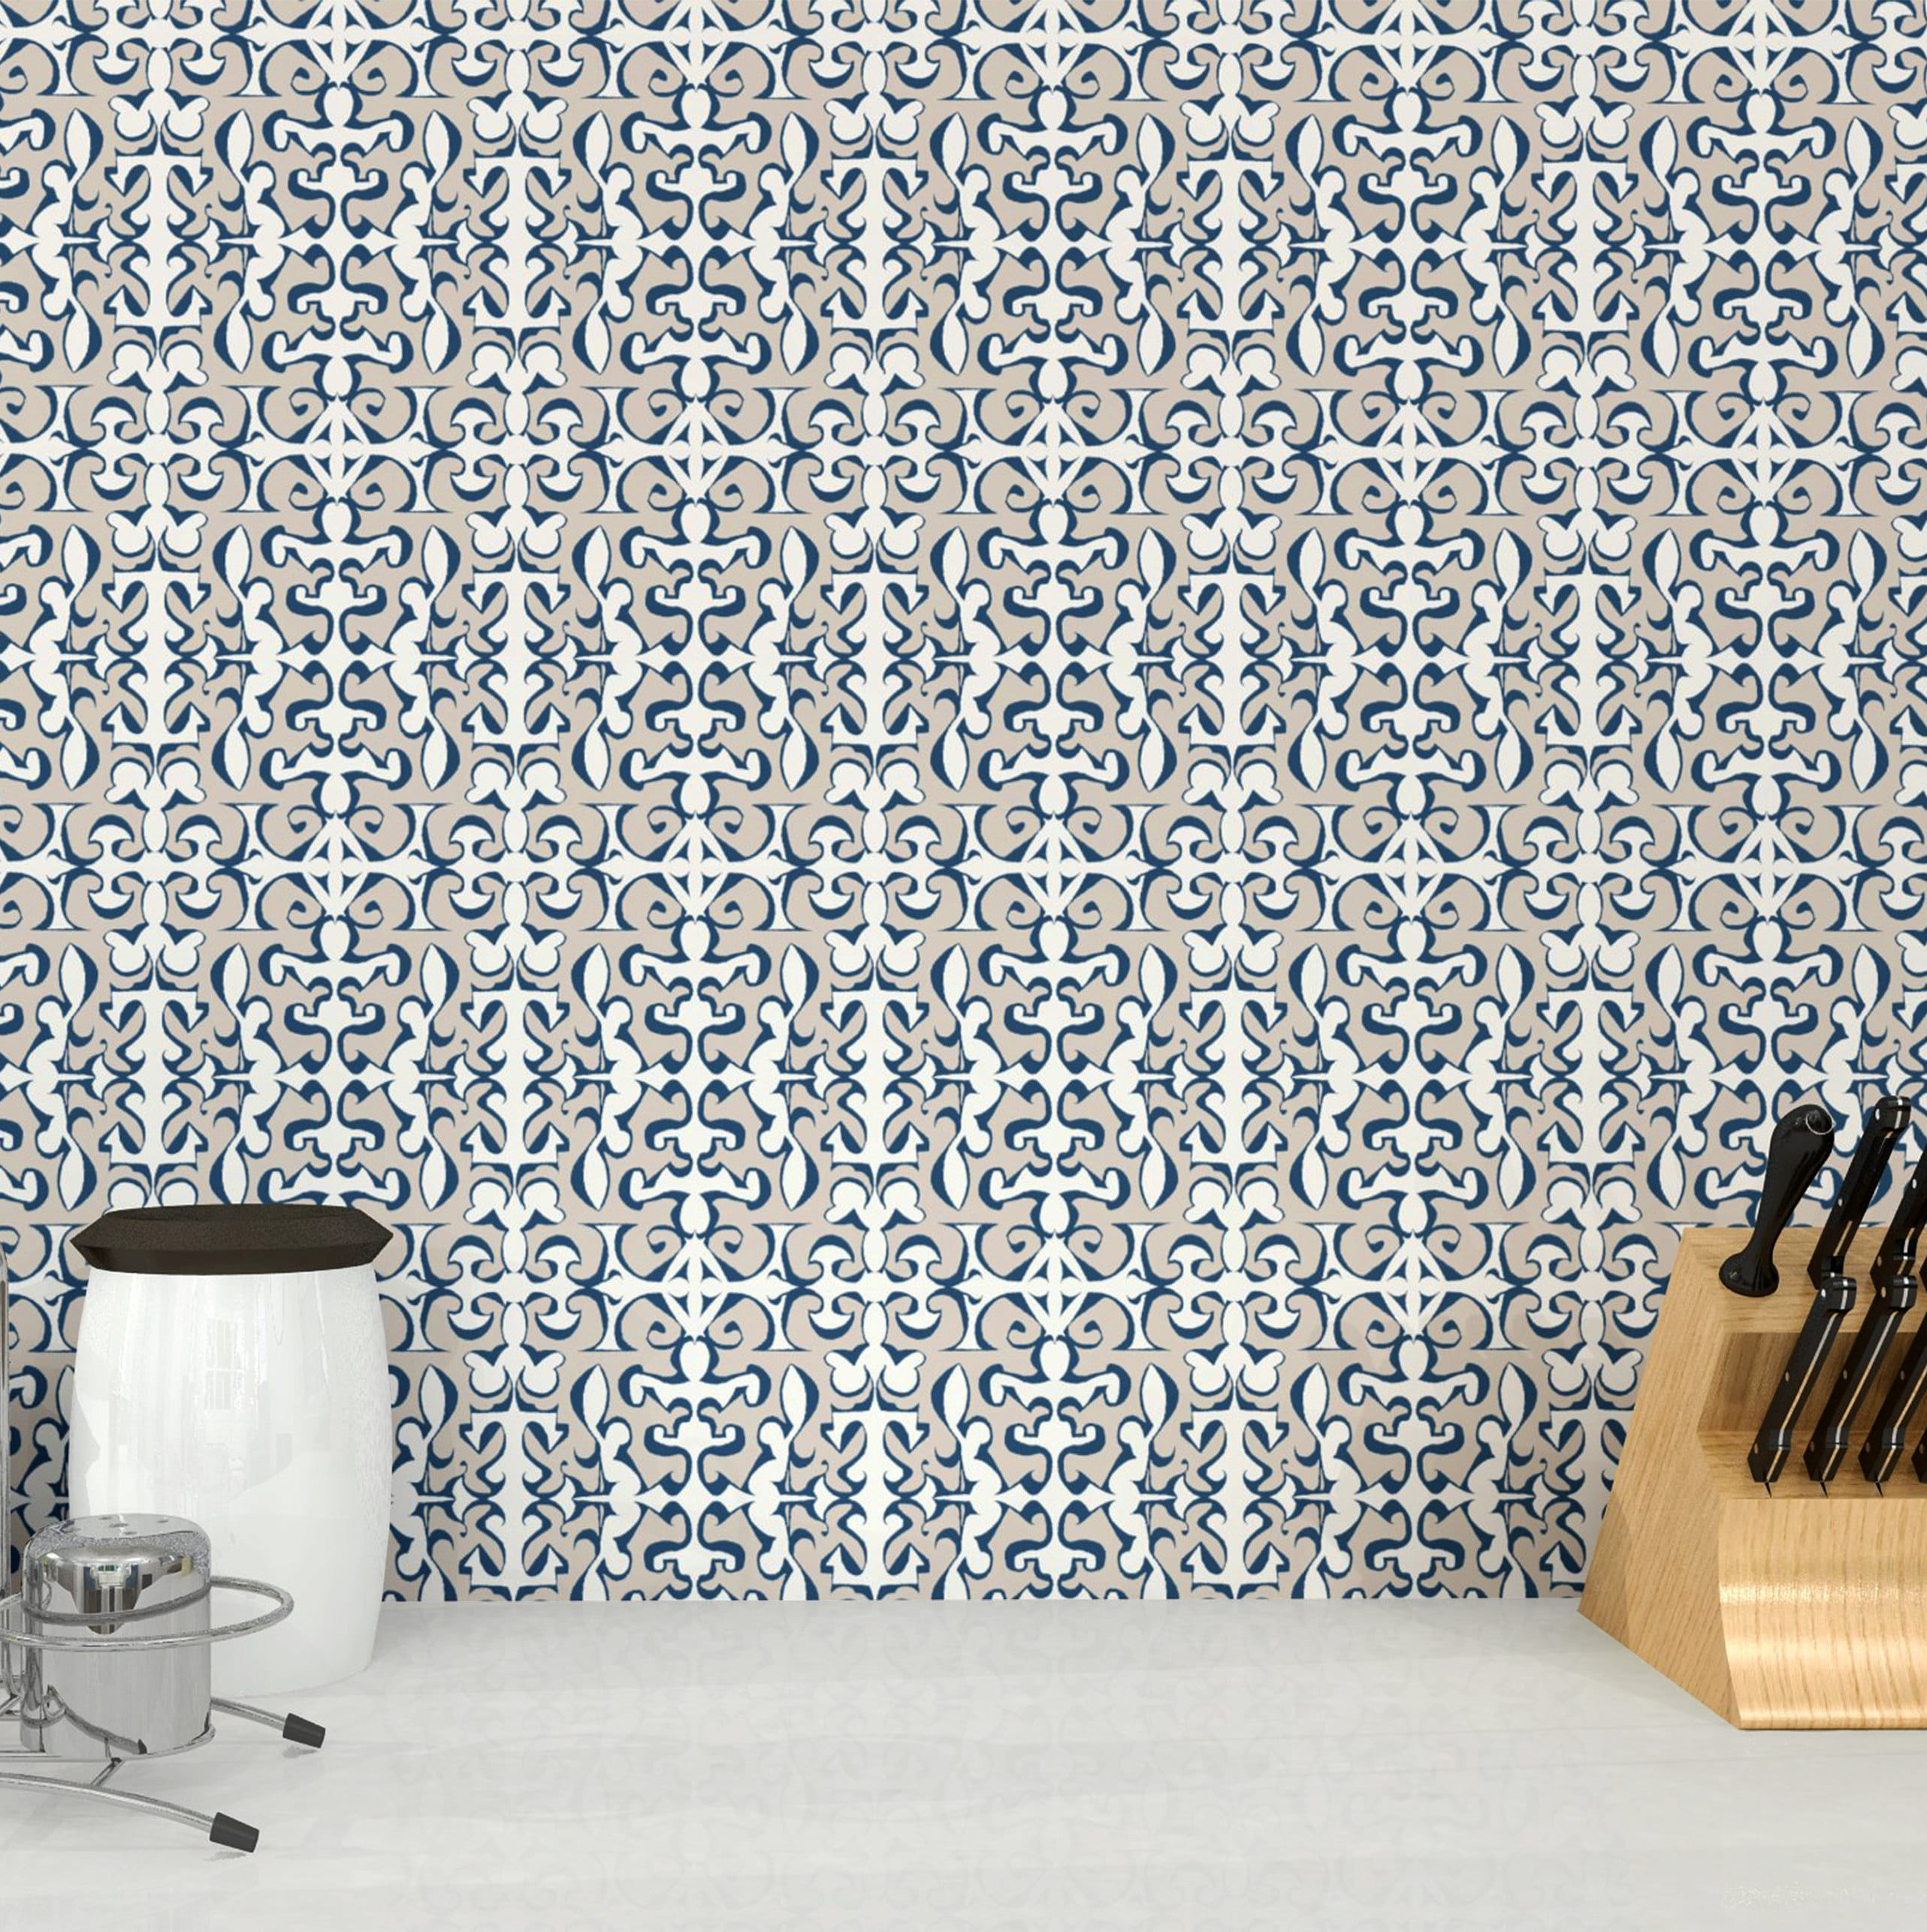 Chic Contemporary Modern Wallpaper Cottage Arabesque Stone Ink Peel And Stick Removable Wallpaper 2 X 8 Rolls Modern Moroccan Abstract Boho Cottage Chic Wall Covering